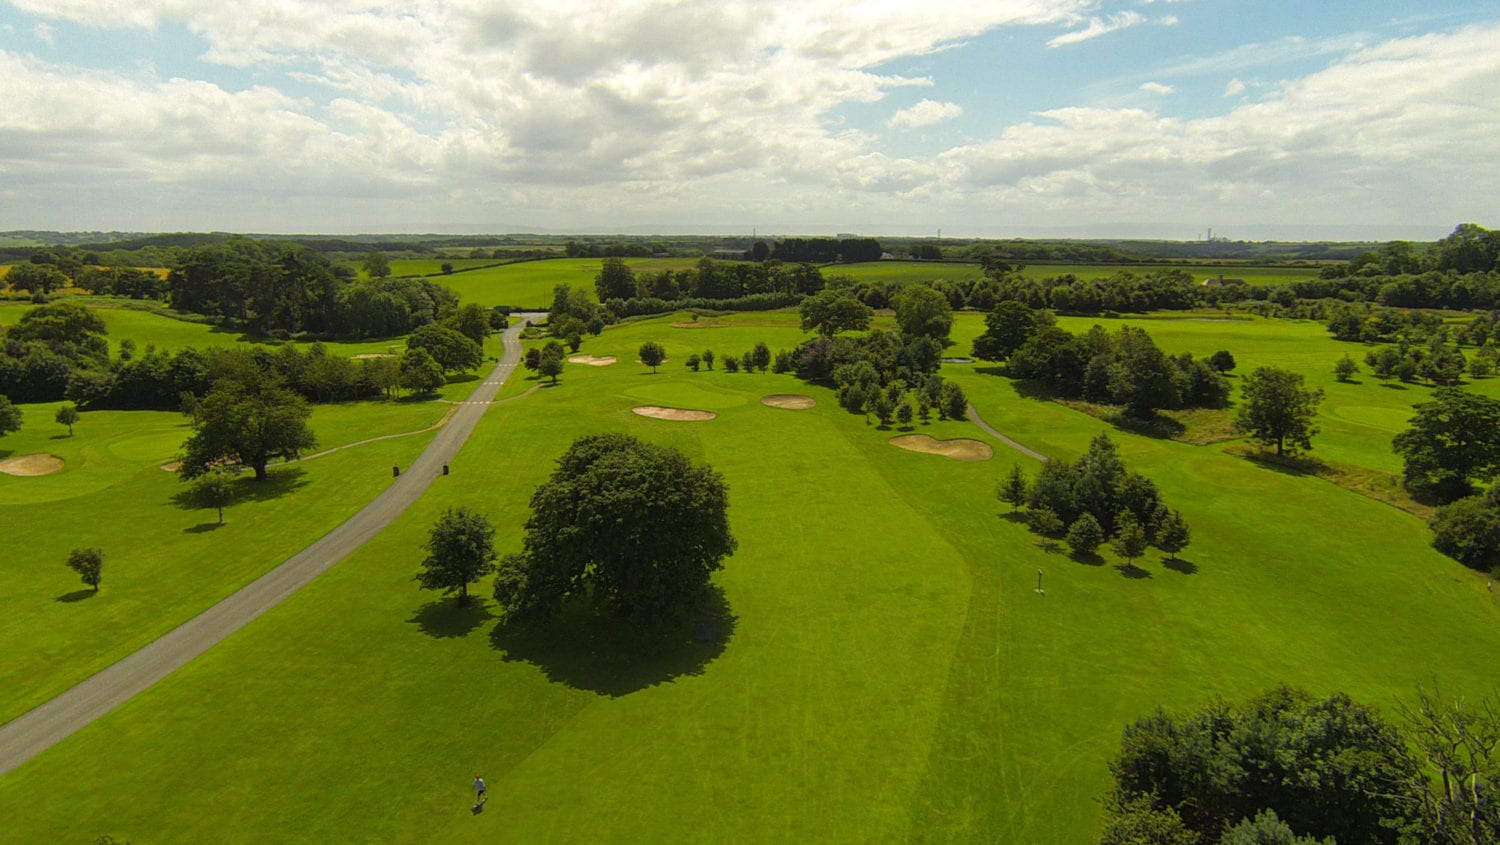 The Mackintosh Golf Course at Cottrell Park, South Wales - An overview of our golf course with the presence of many scattered trees